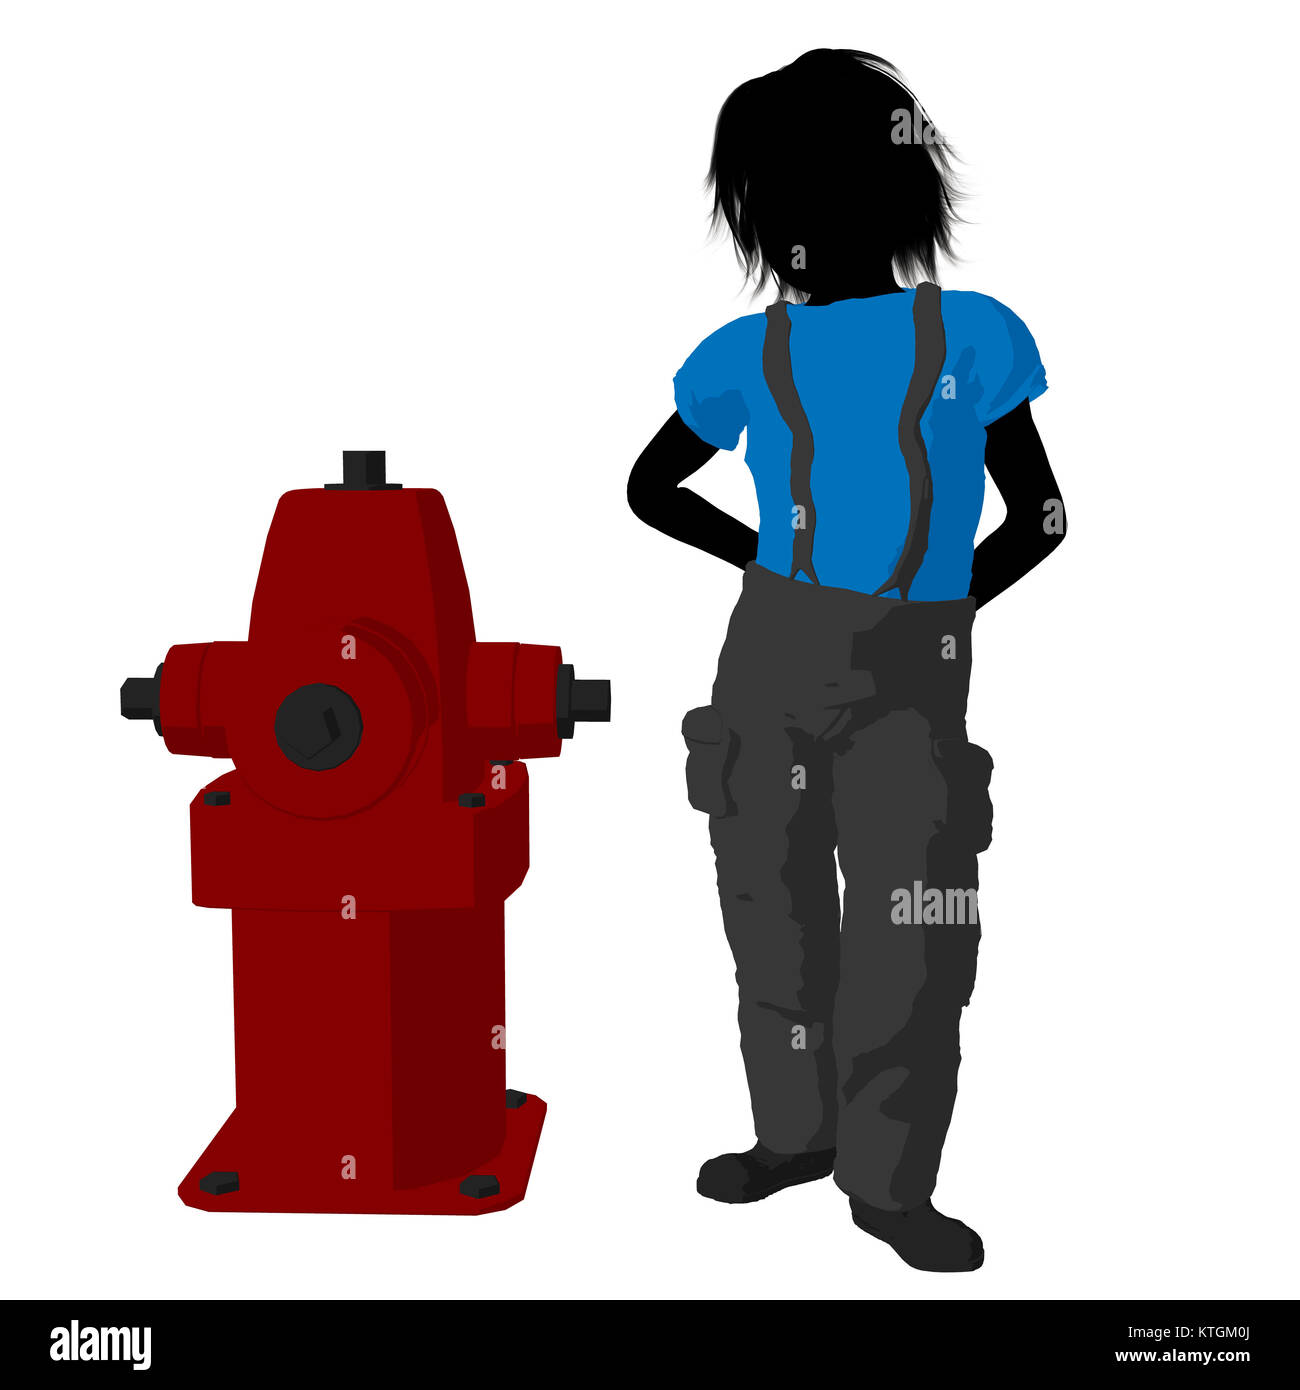 Child Fire Hydrant Stock Photos Amp Child Fire Hydrant Stock Images